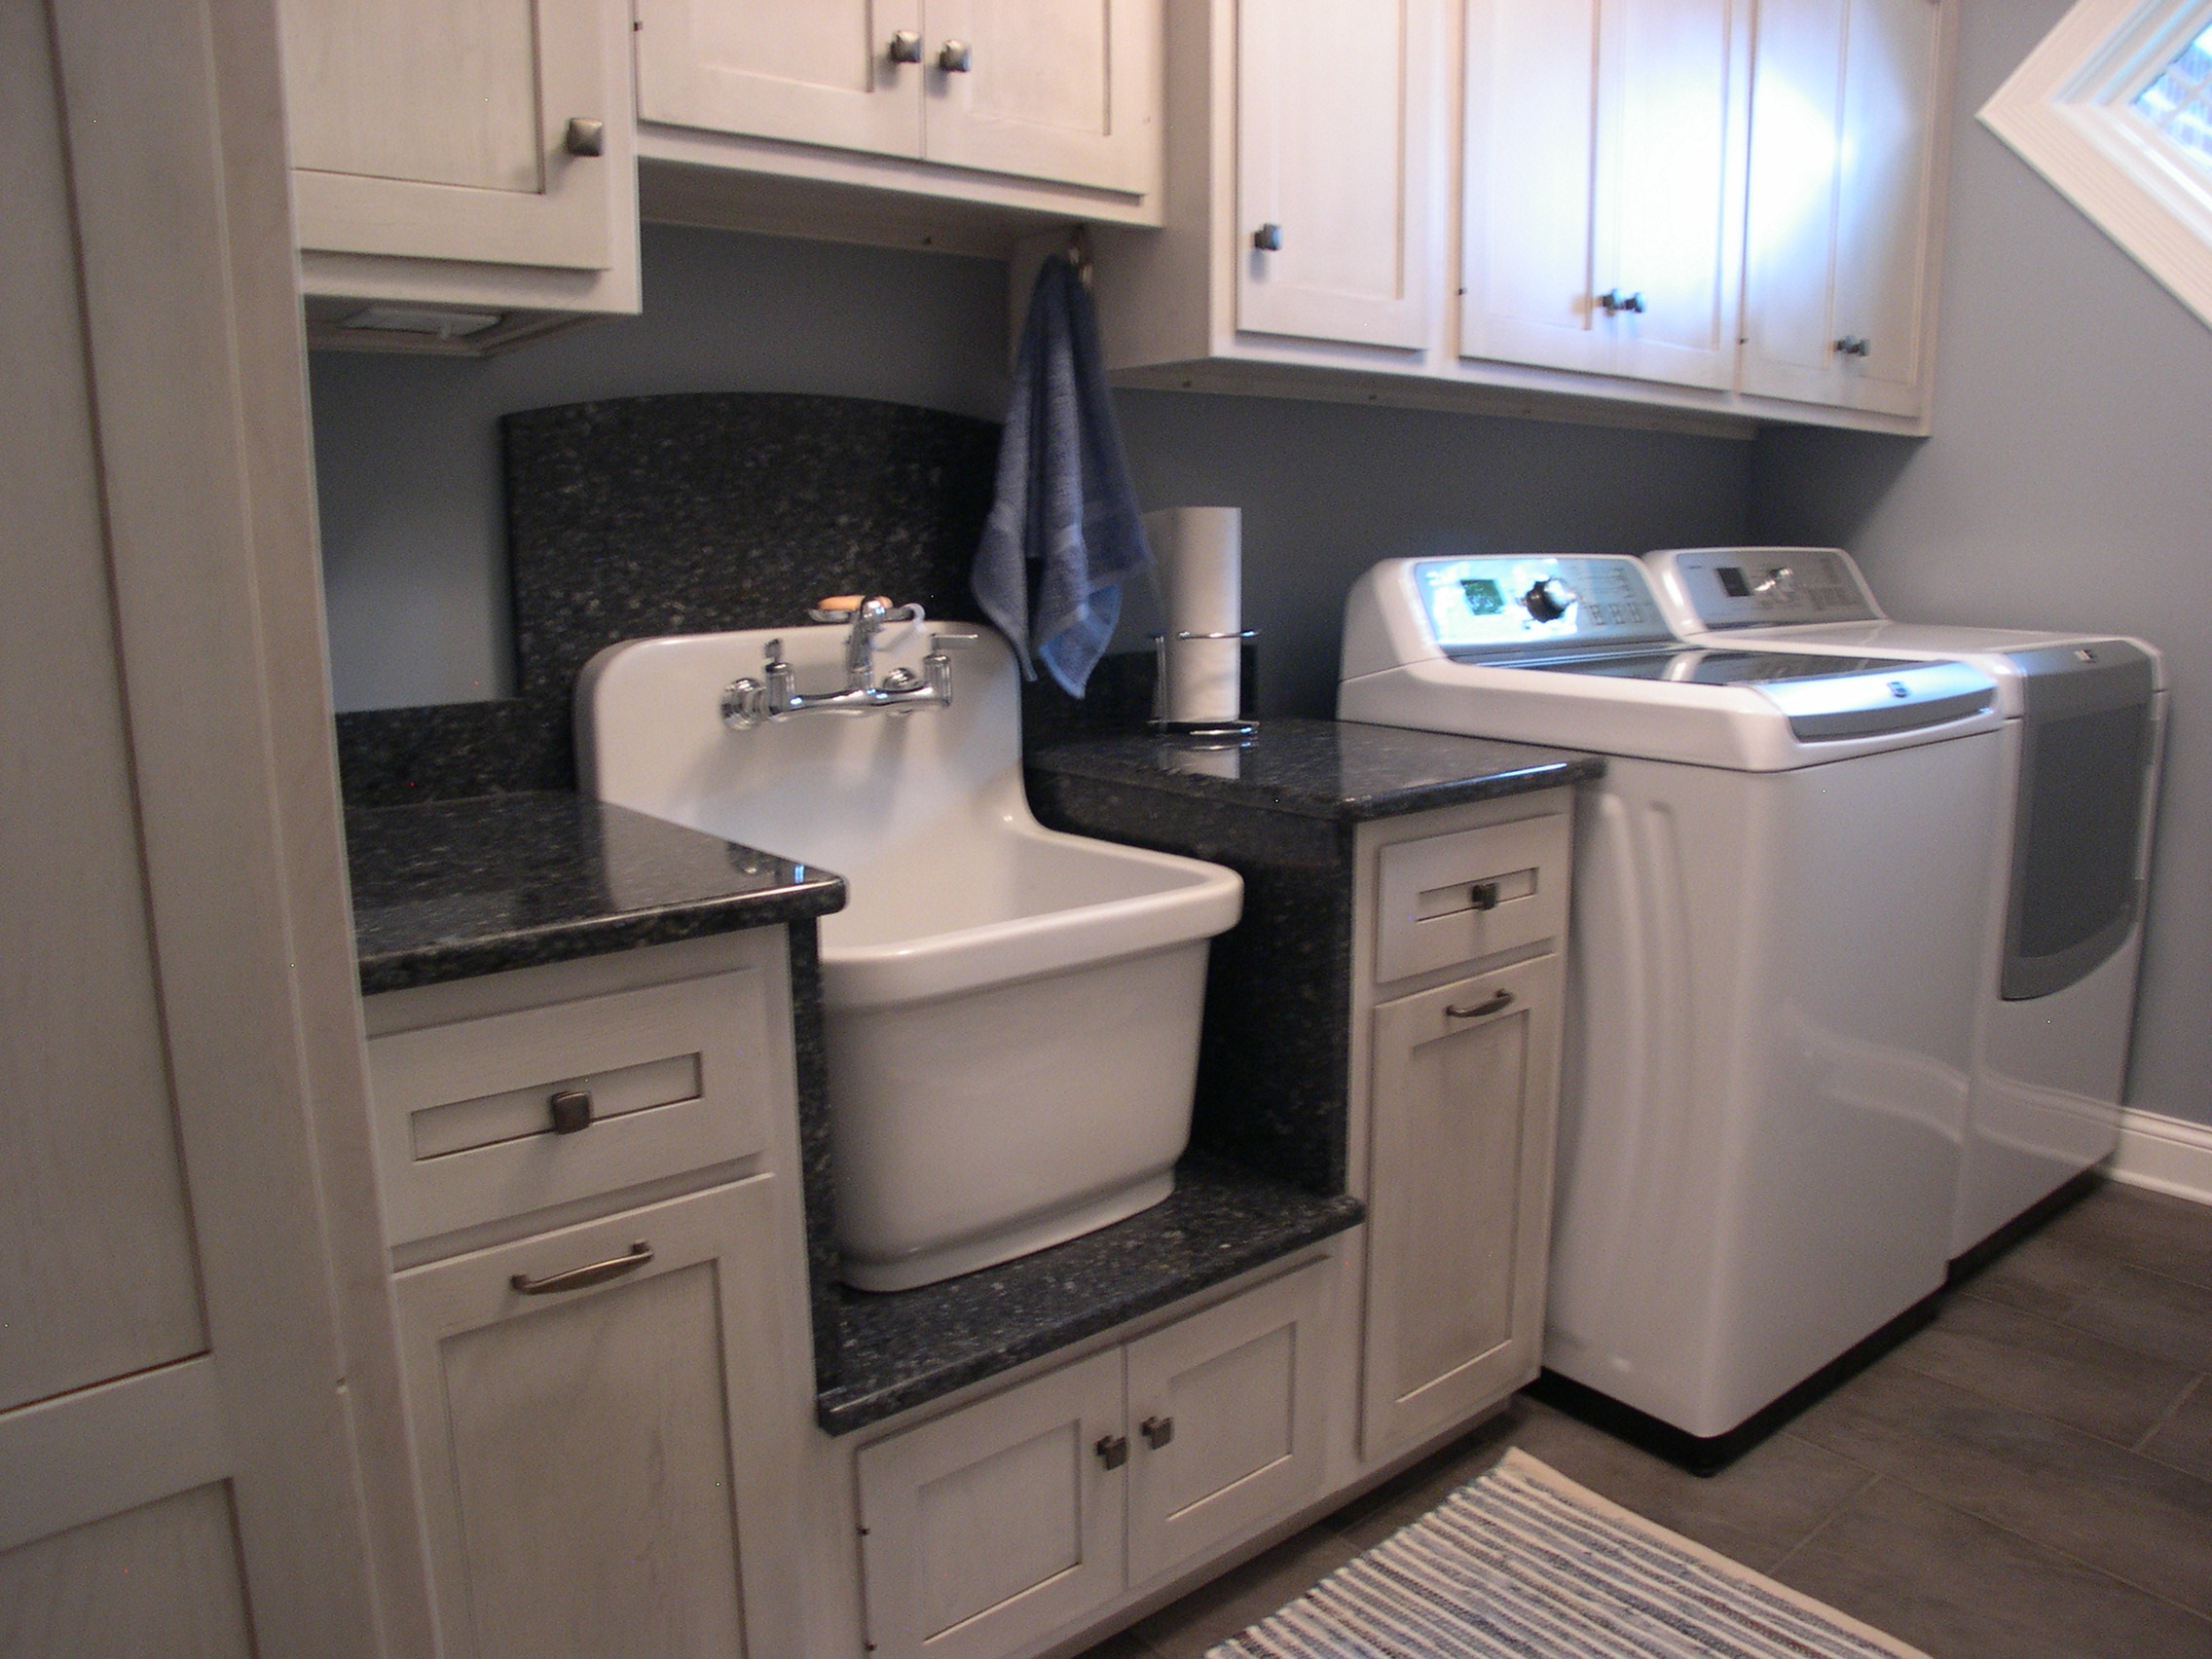 Laundry - Efficiency and Style can make all the difference in a Laundry room. Let us show you how to work around the washer and dryer and make it all work to your advantage.